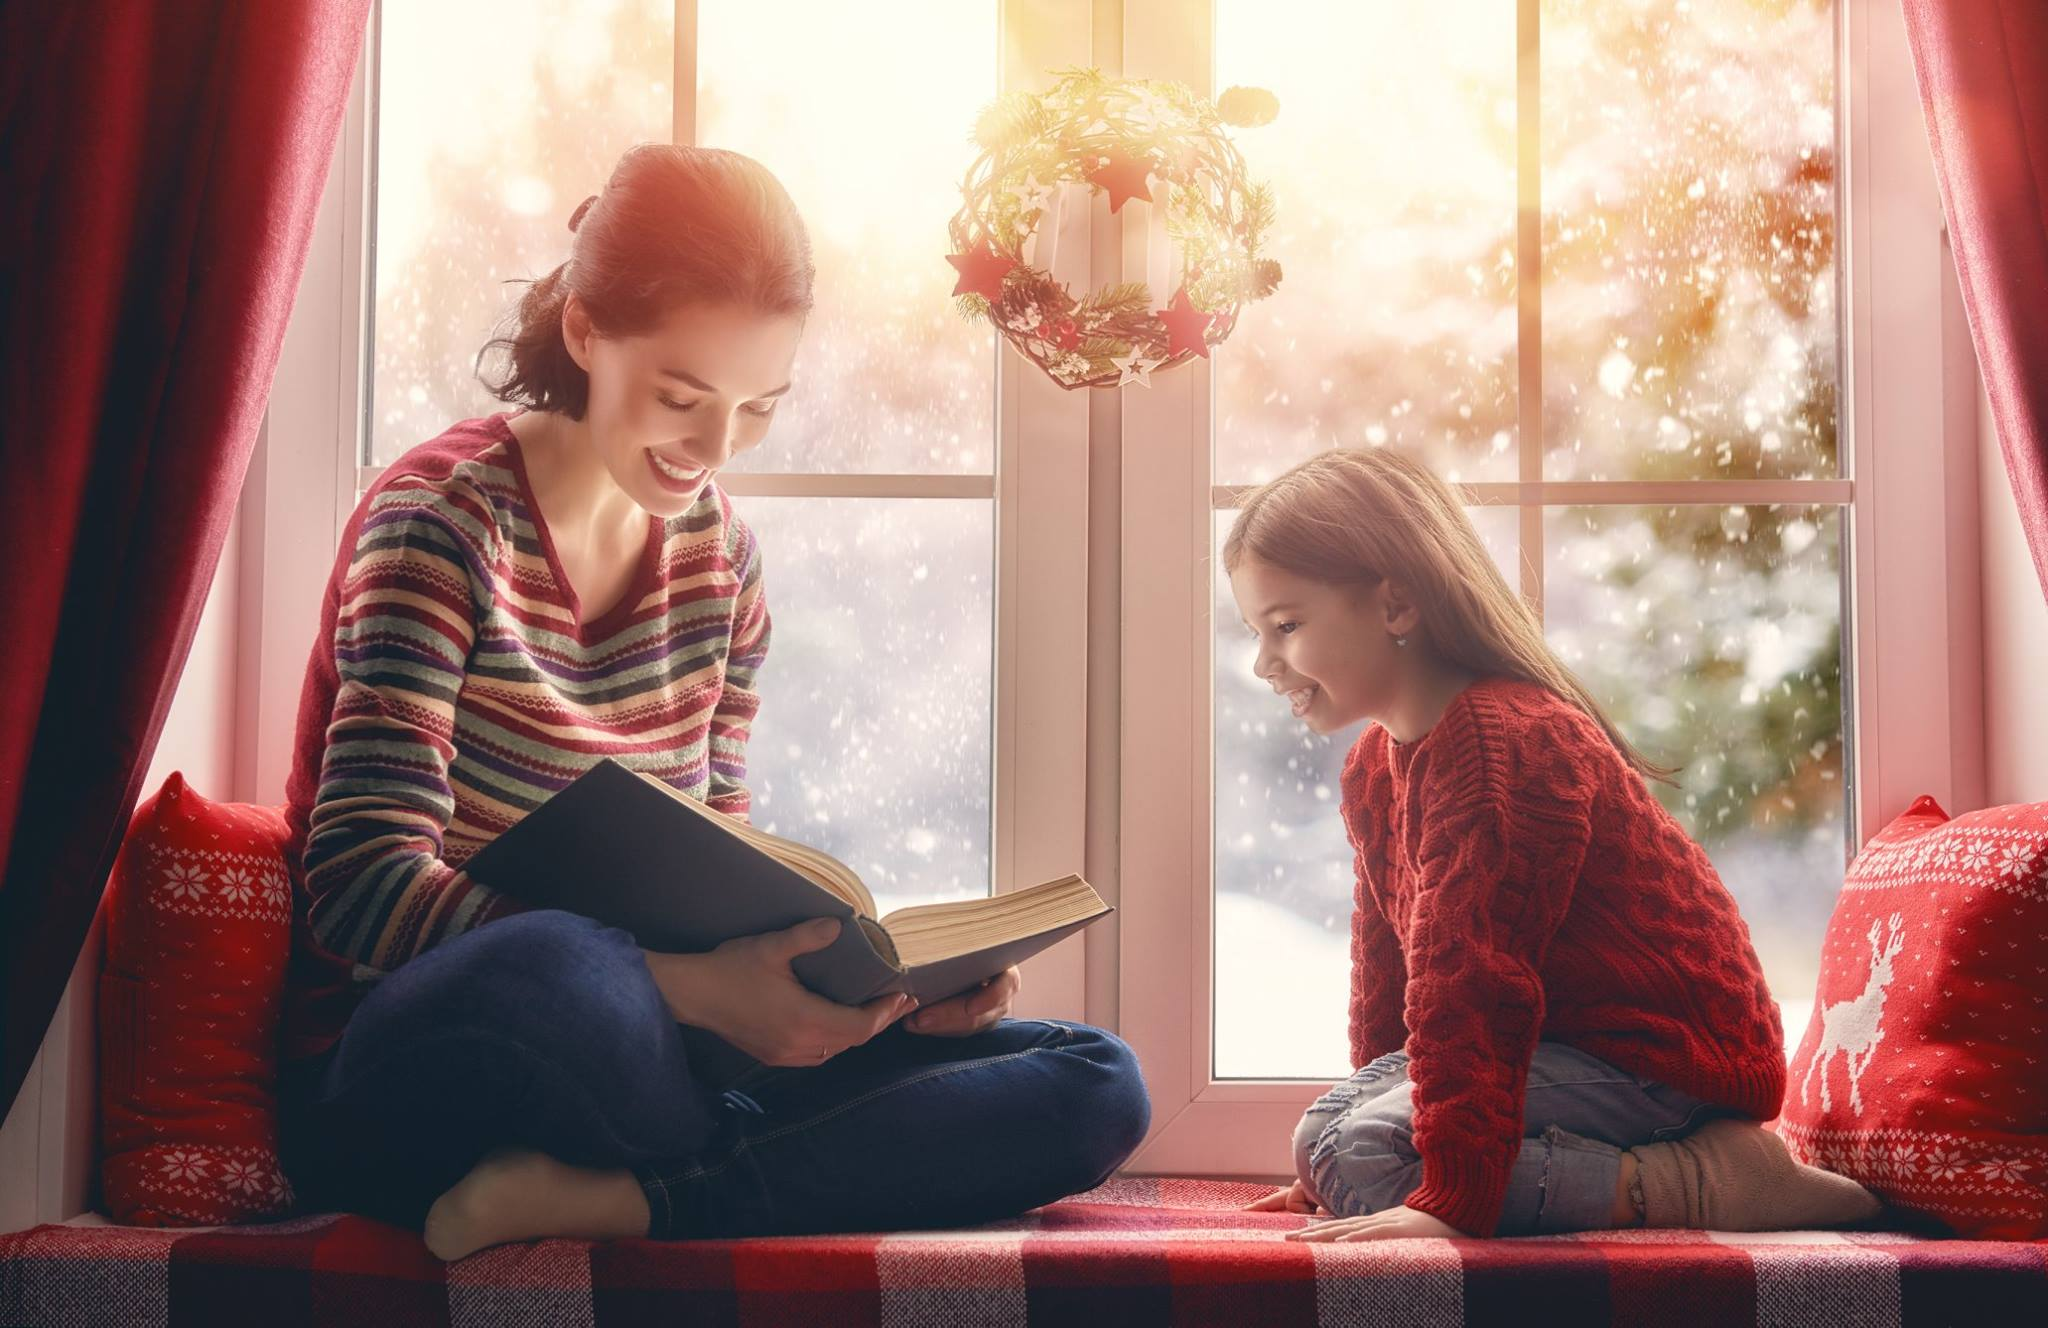 A woman reads to a child in a christmas scene.